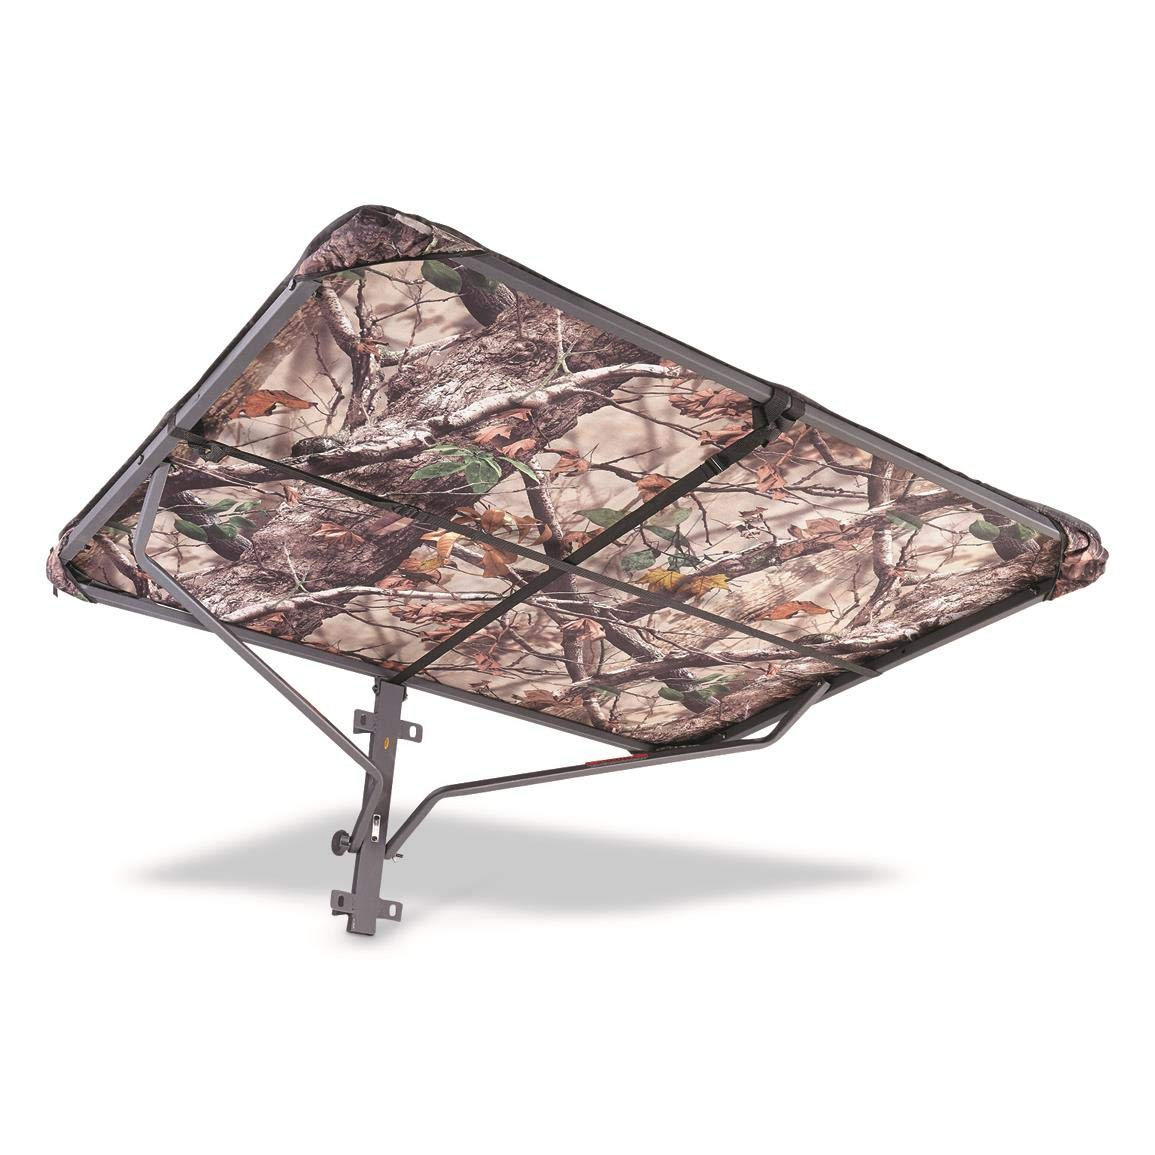 Guide Gear Deluxe Tree Stand Umbrella by Guide Gear